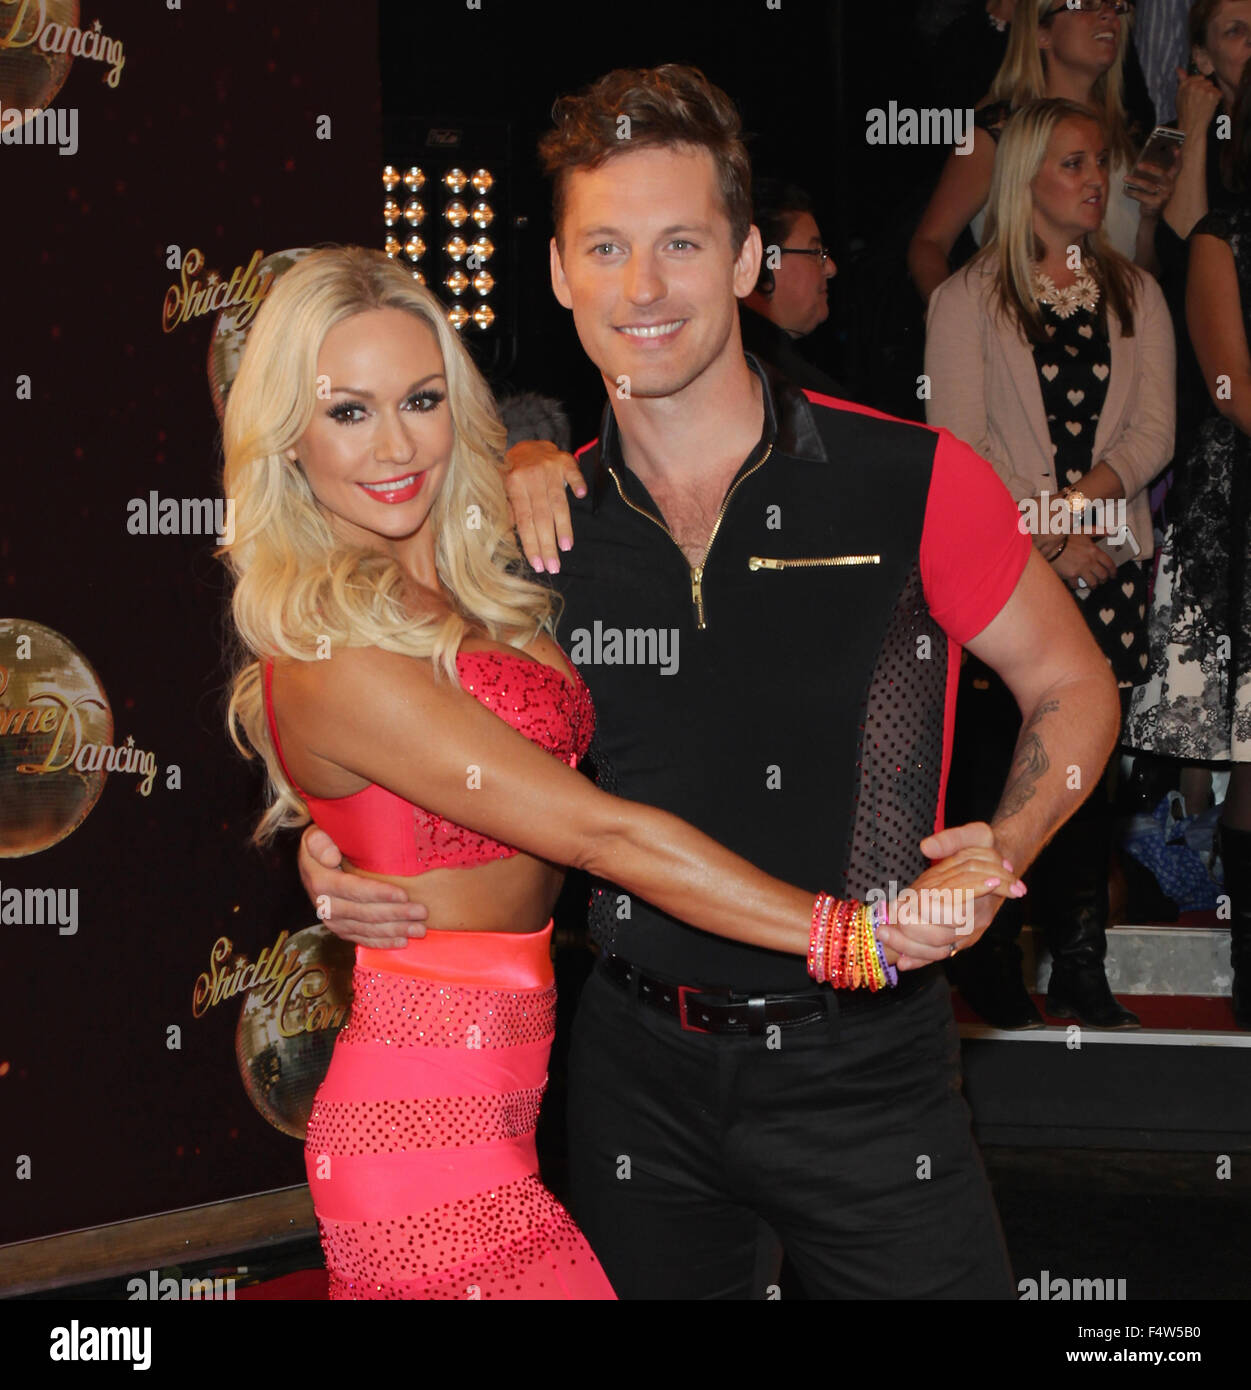 Borehamwood, UK, 1st Sep 2015: Kristina Rihanoff and Tristan MacManus attend the Strictly Come Dancing - red carpet - Stock Image